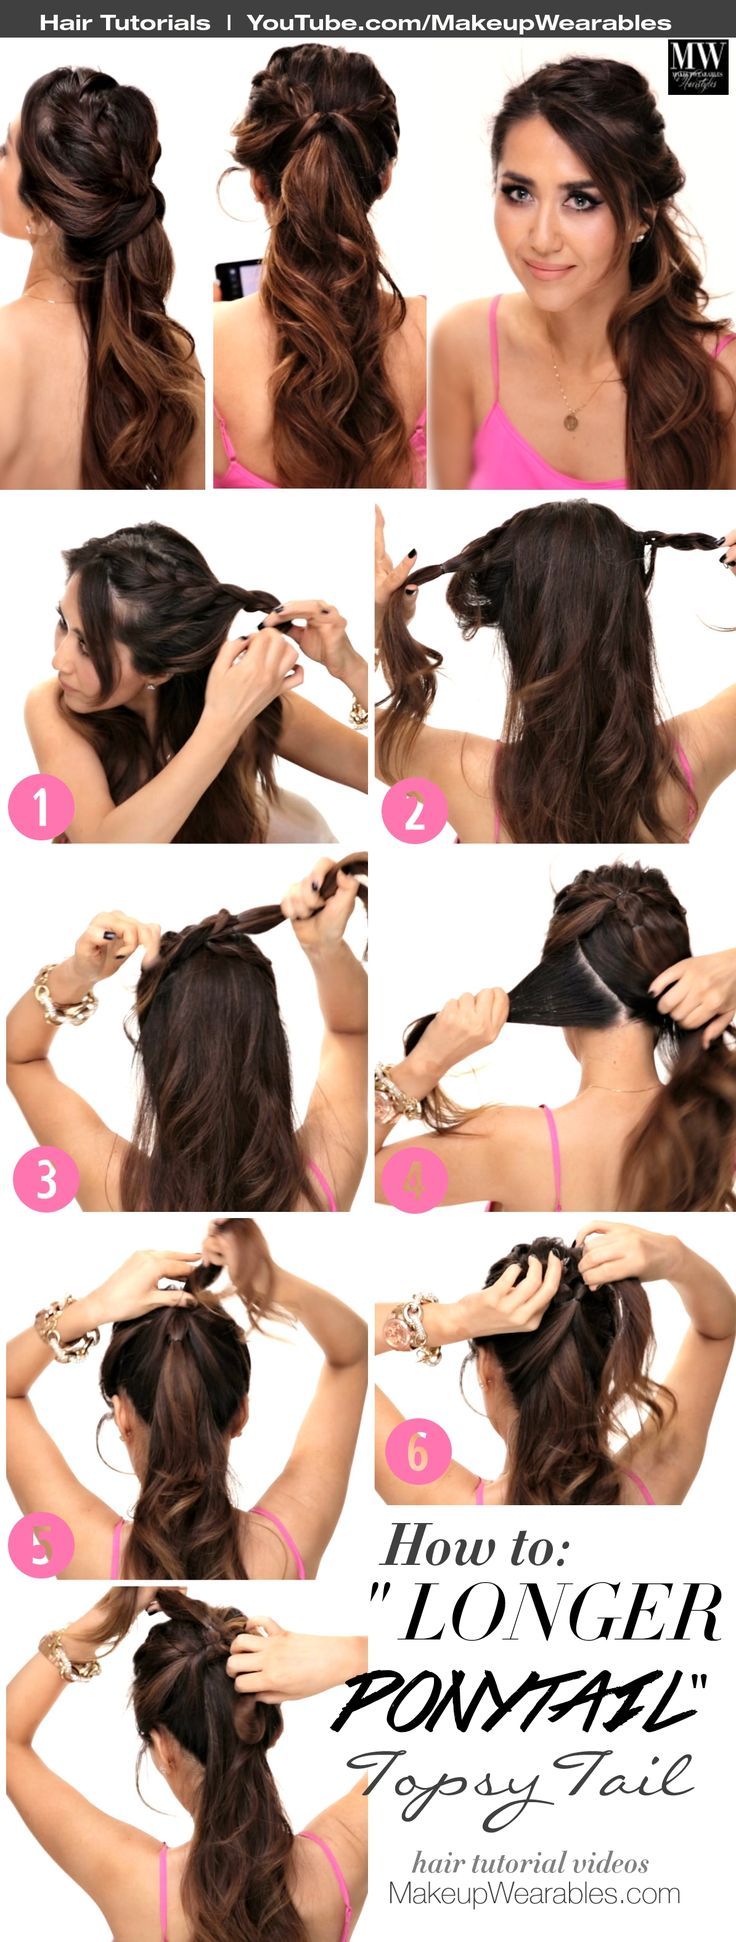 4 Lazy Girl's Easy Hairstyles| How to Cute Braids + Messy Buns